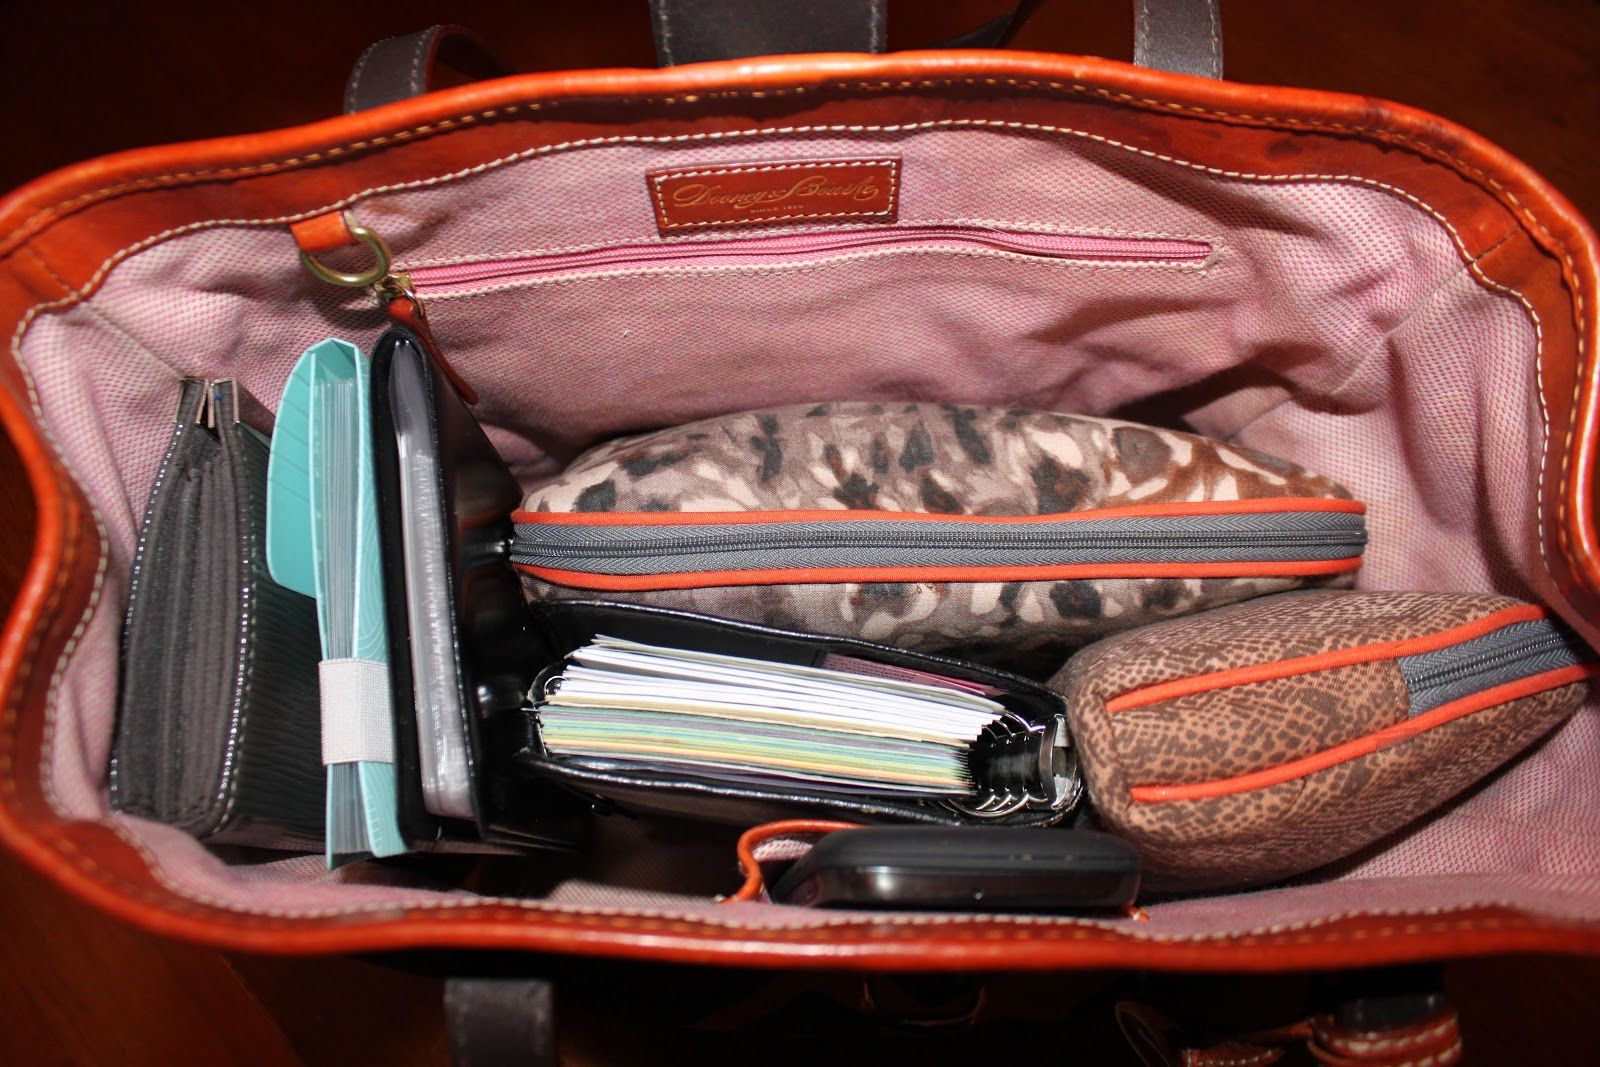 My Great Challenge How To Organize Your Purse